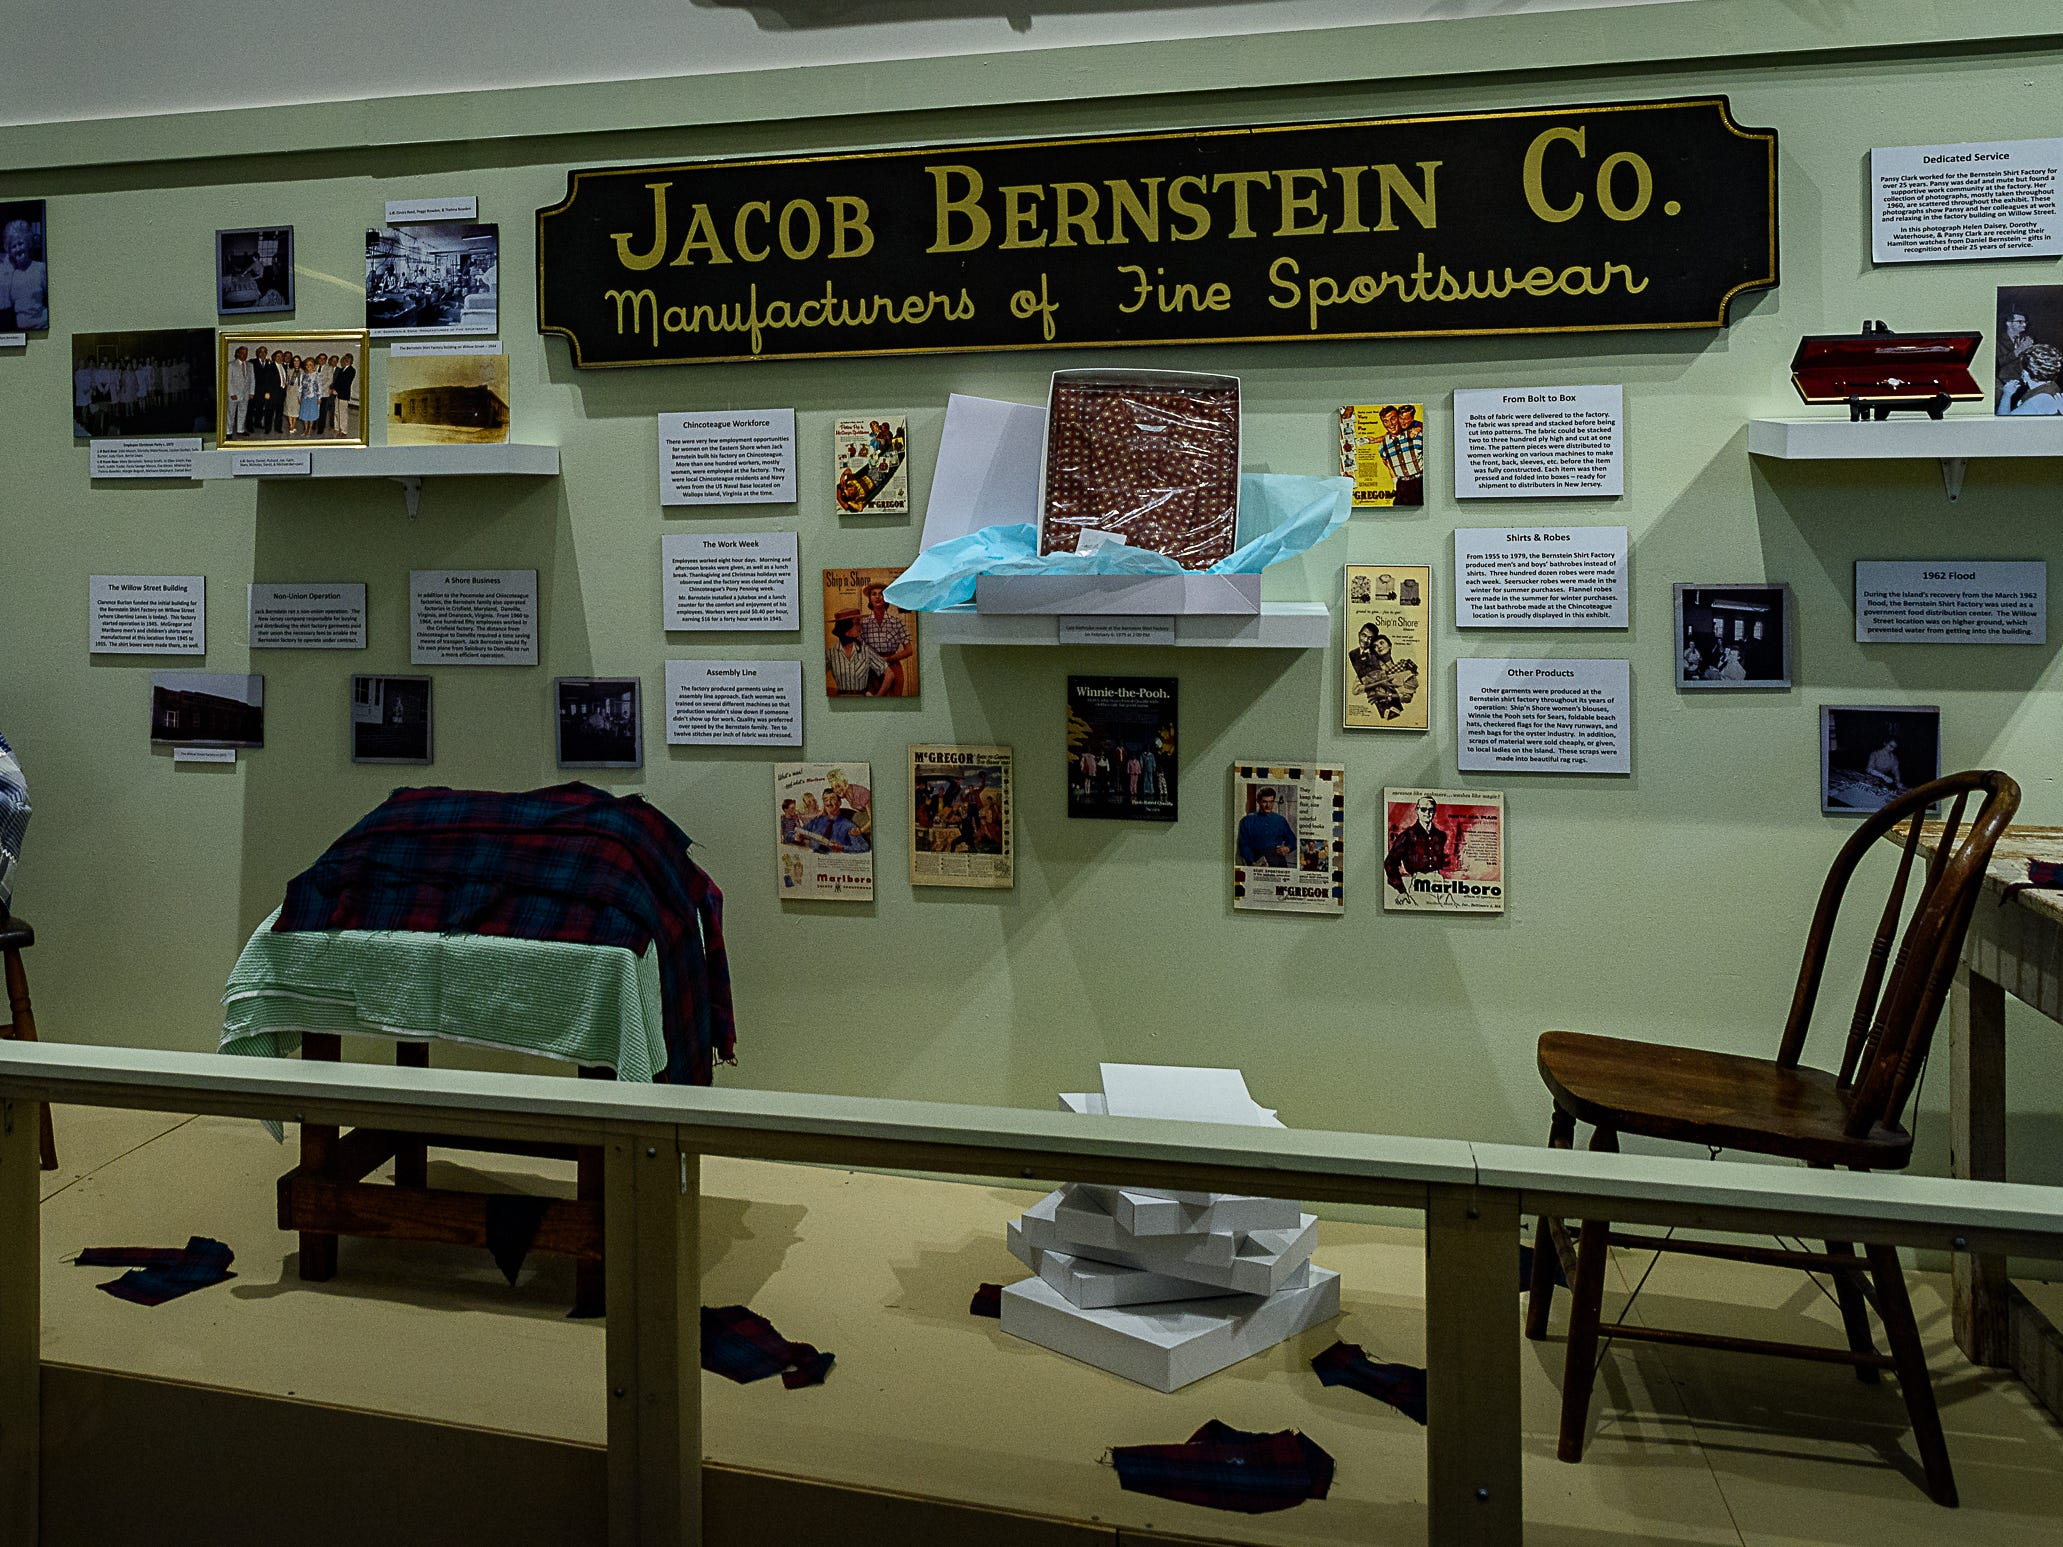 A showcase of the Jacob Berstein Co., a clothing manufacturer with factories on Chincoteague and elsewhere on Delmarva.